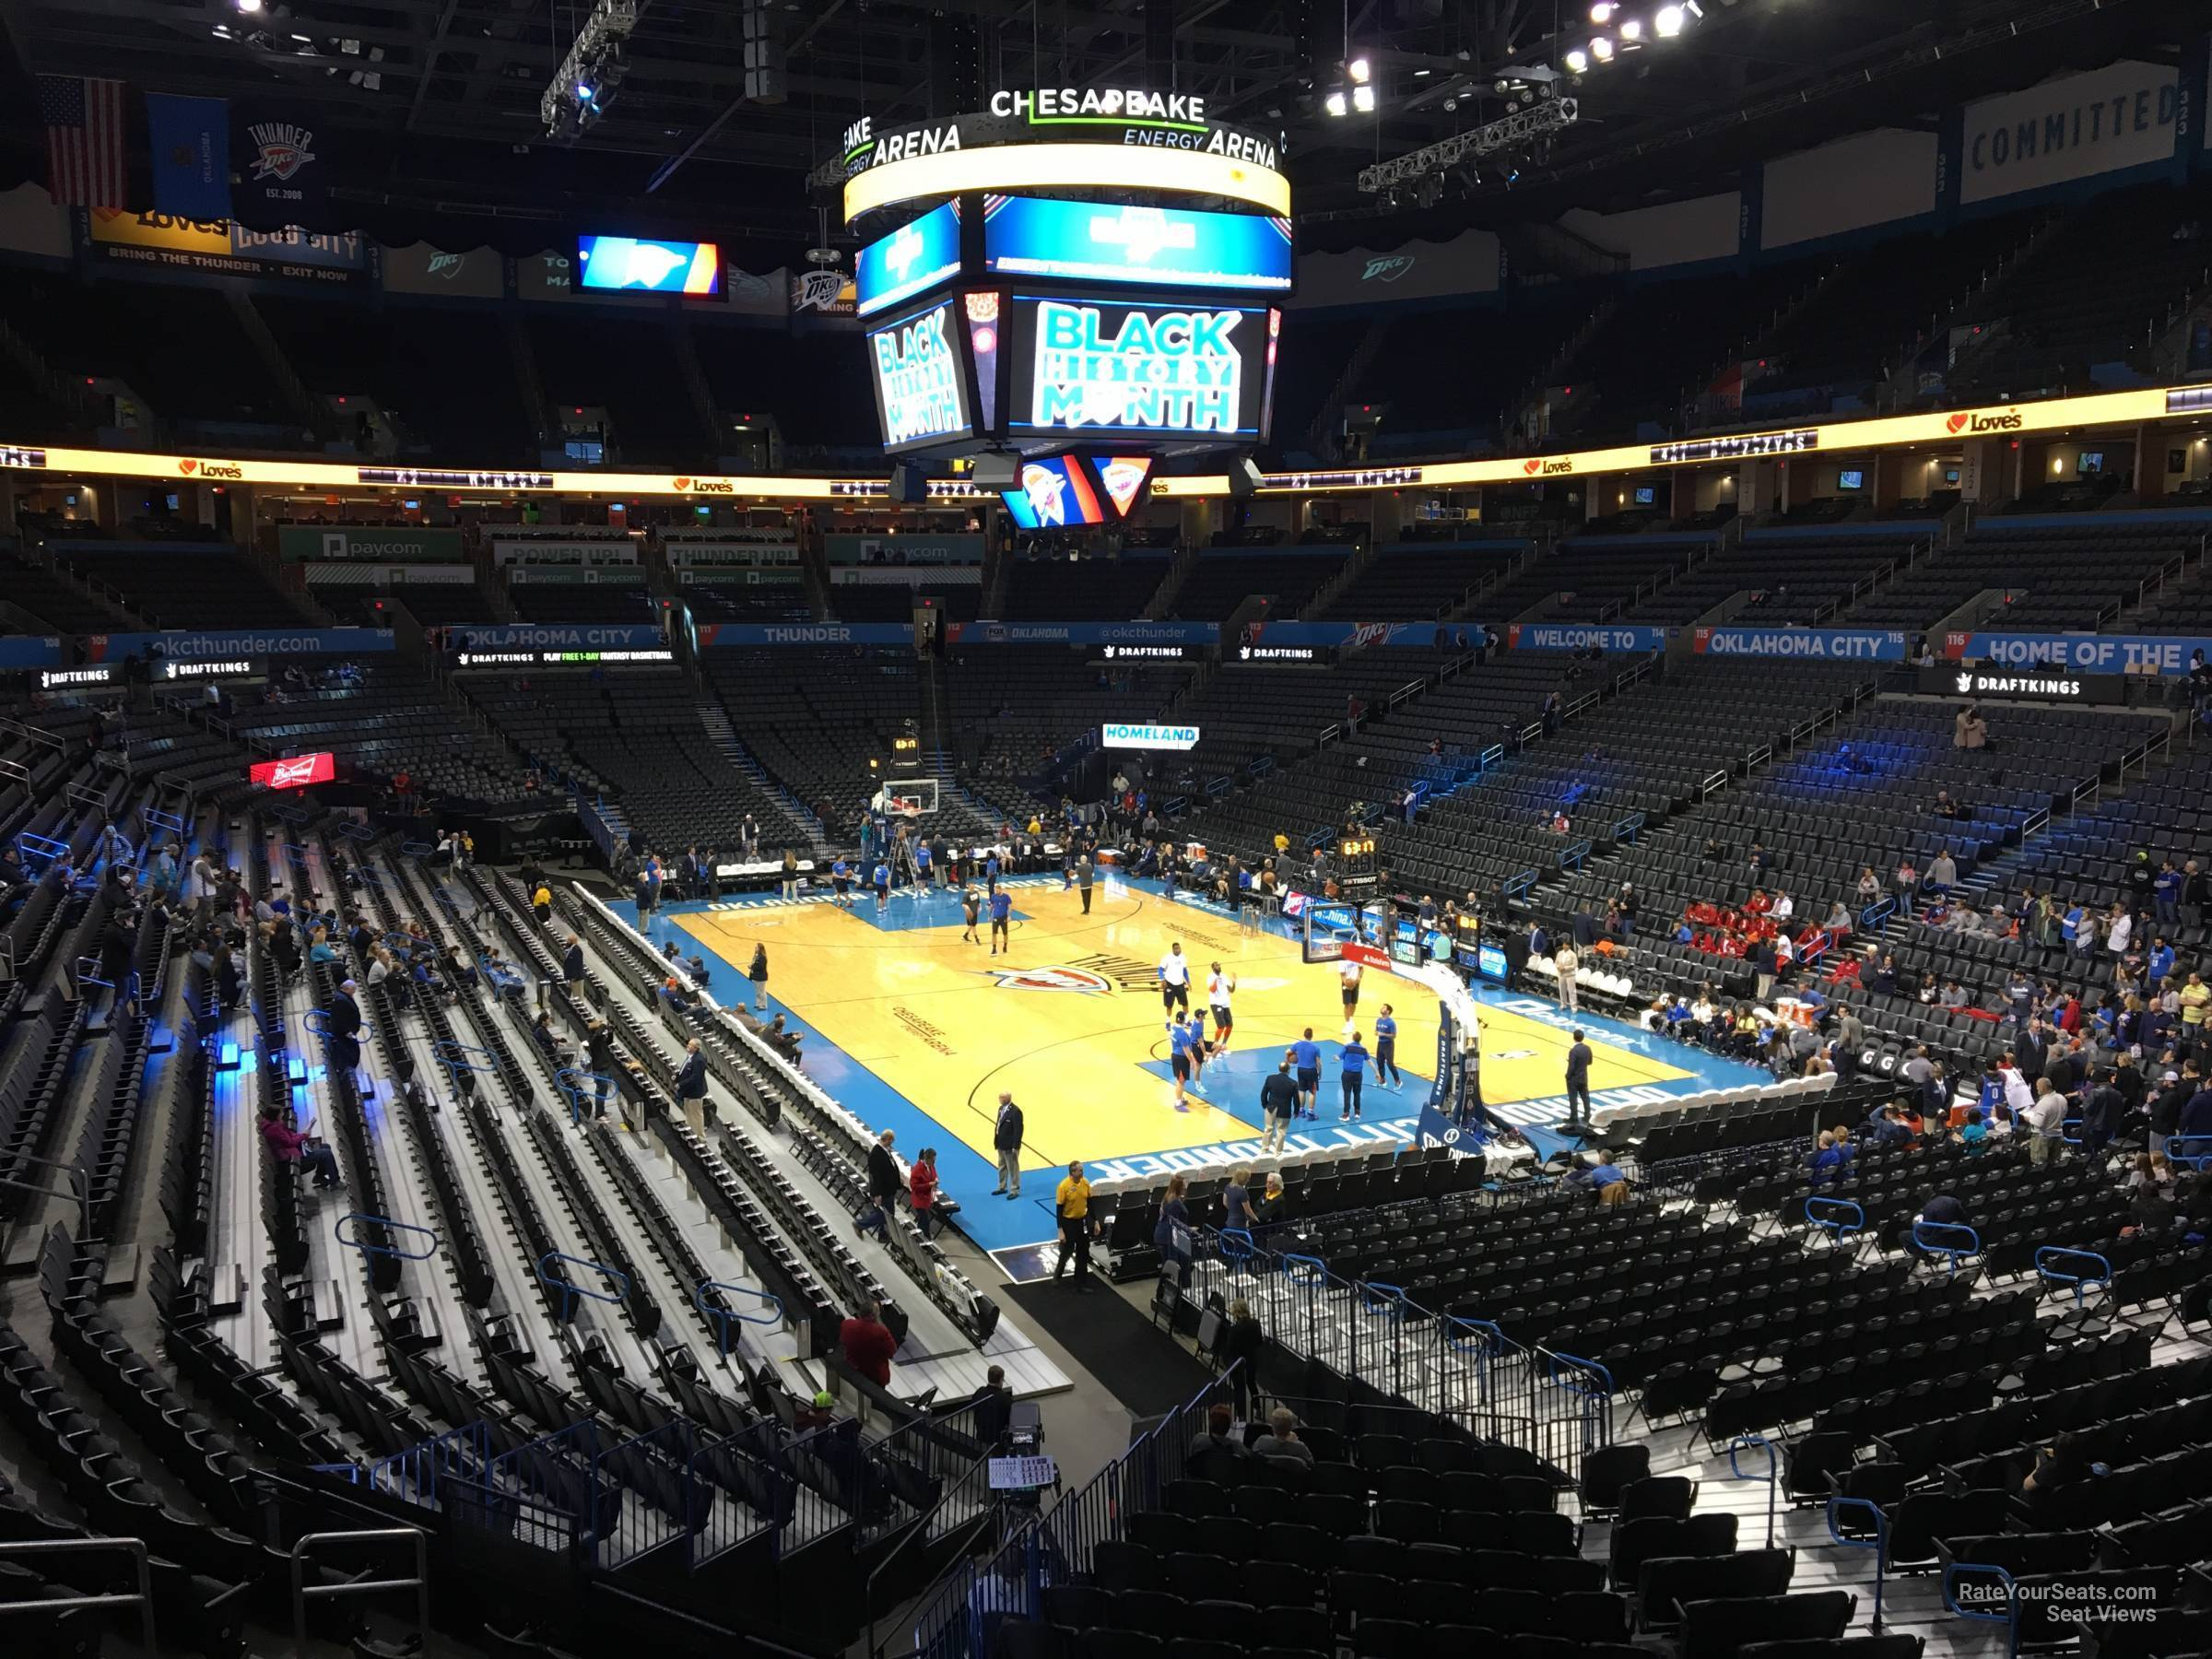 Seat View for Chesapeake Energy Arena Section 202, Row A